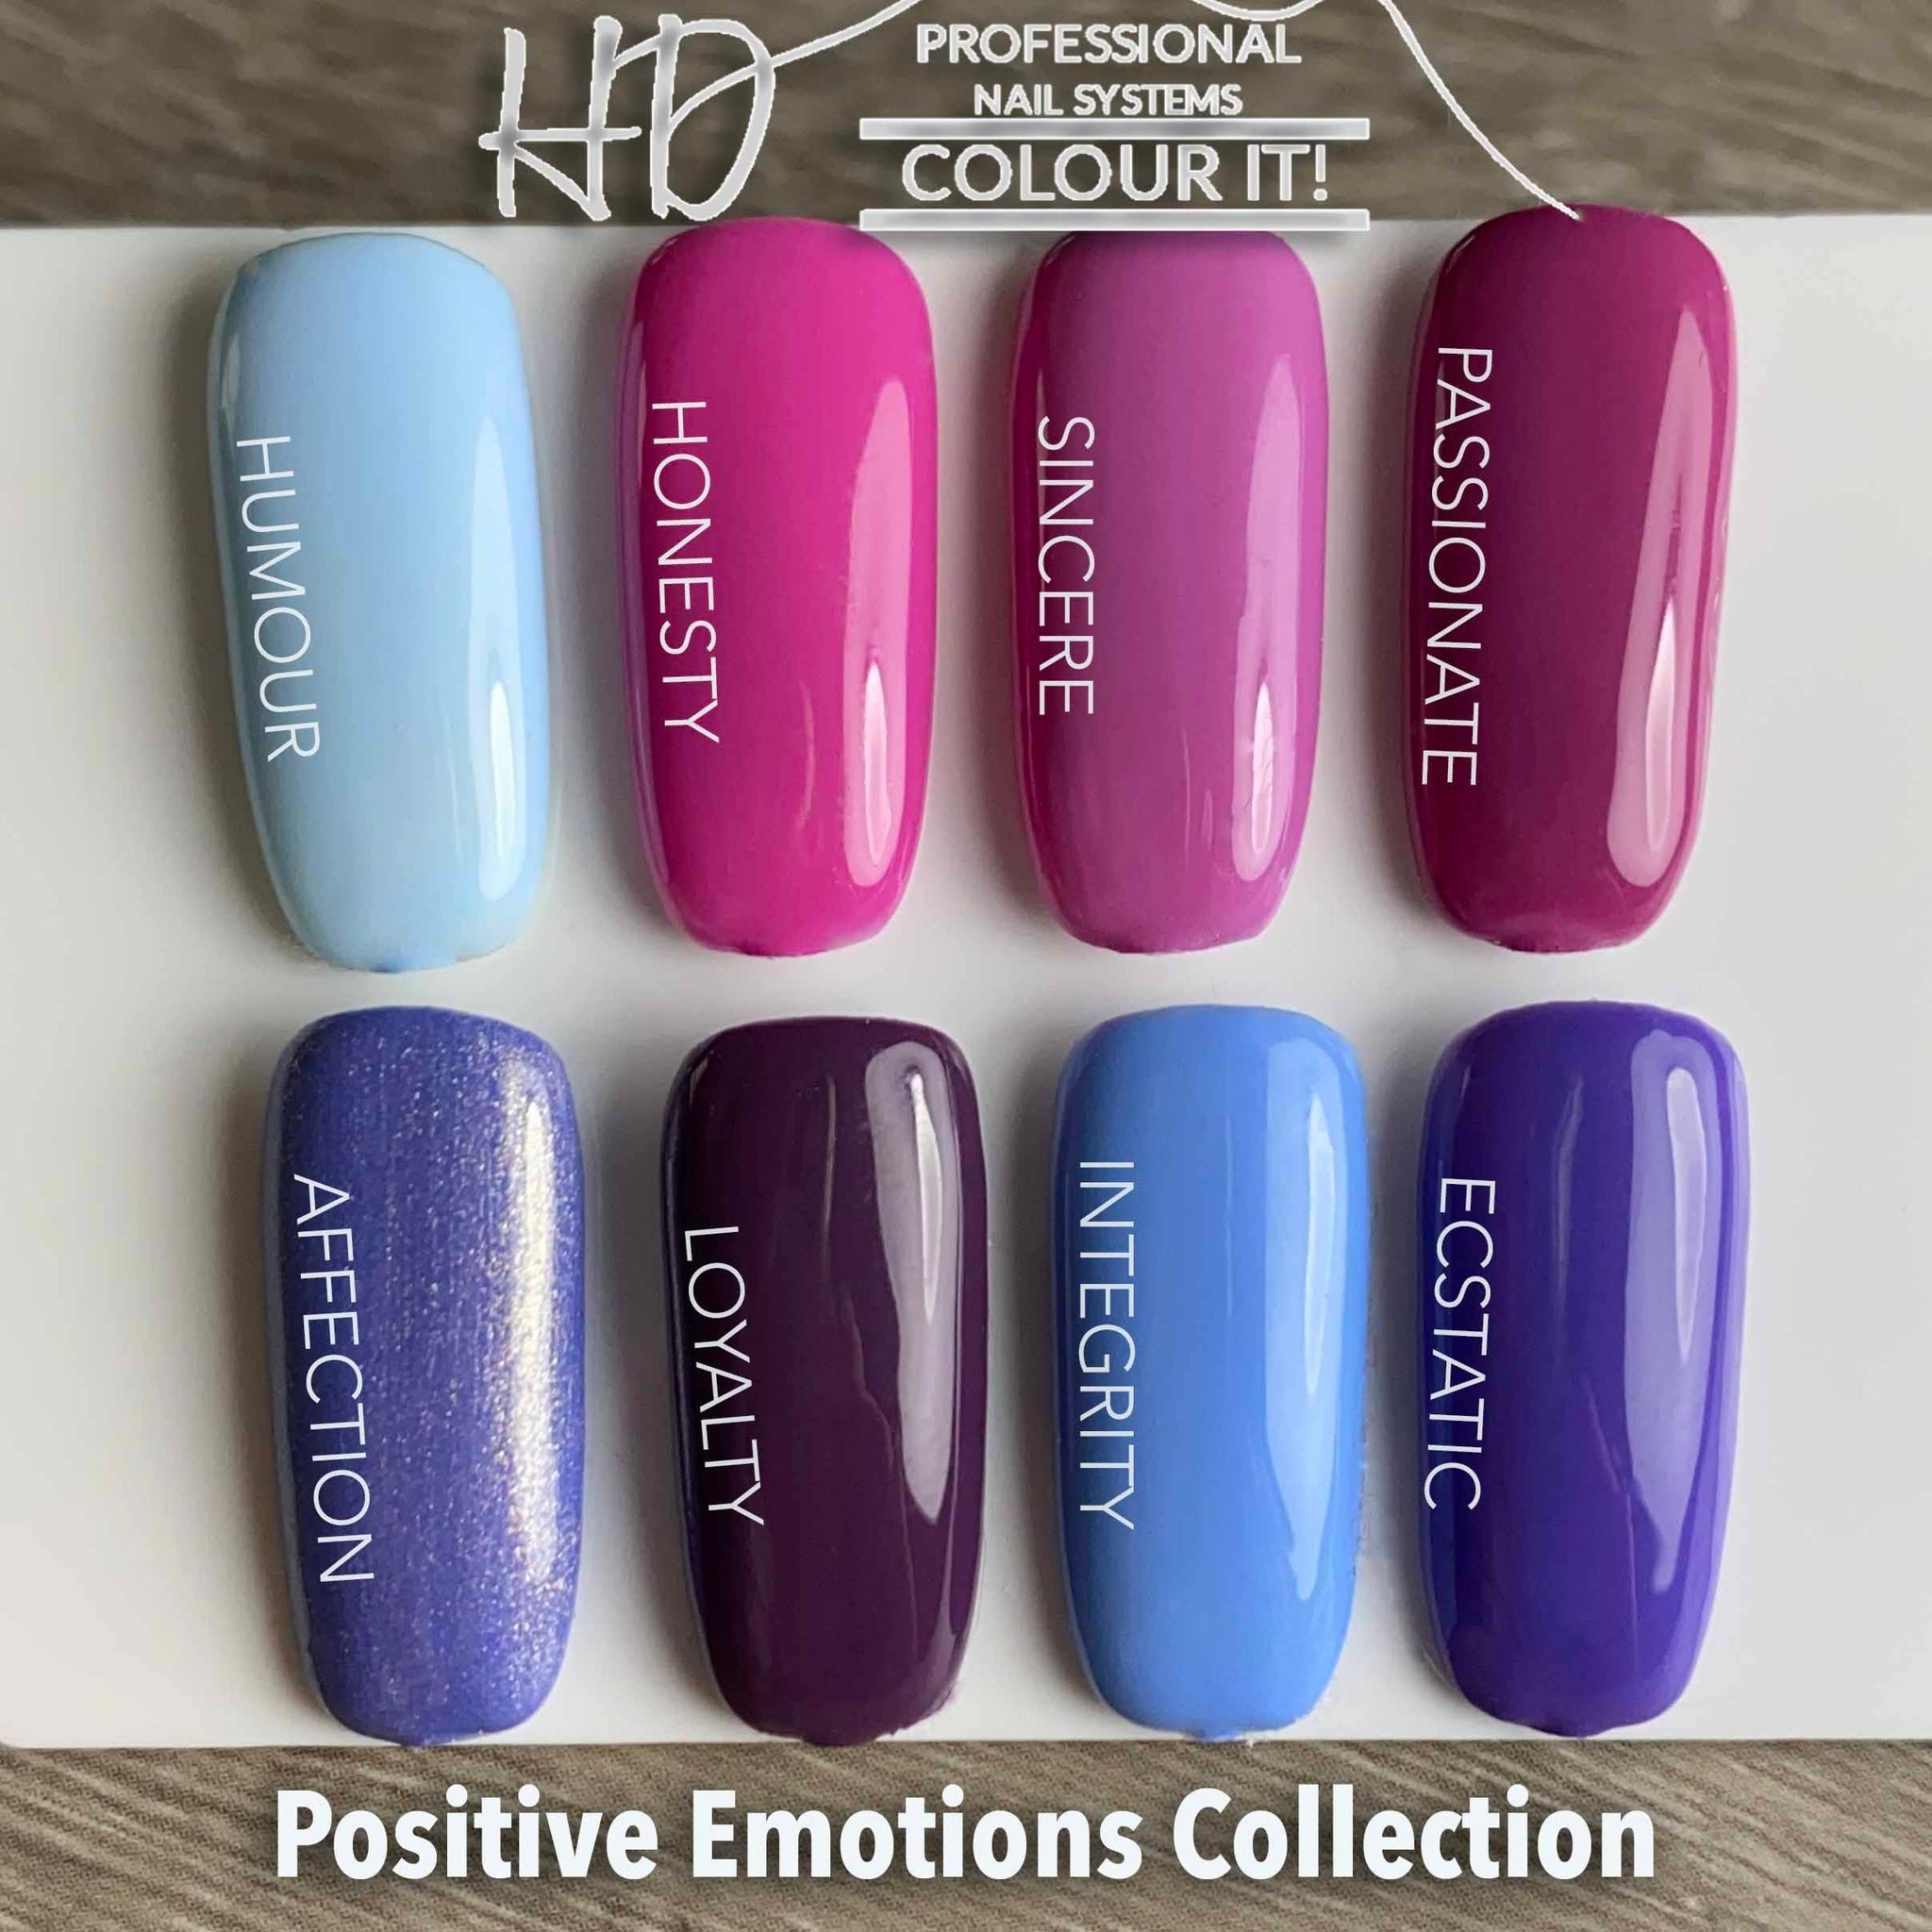 HD Colour It! Positive Emotions Collection (all 8 colors 15ml)